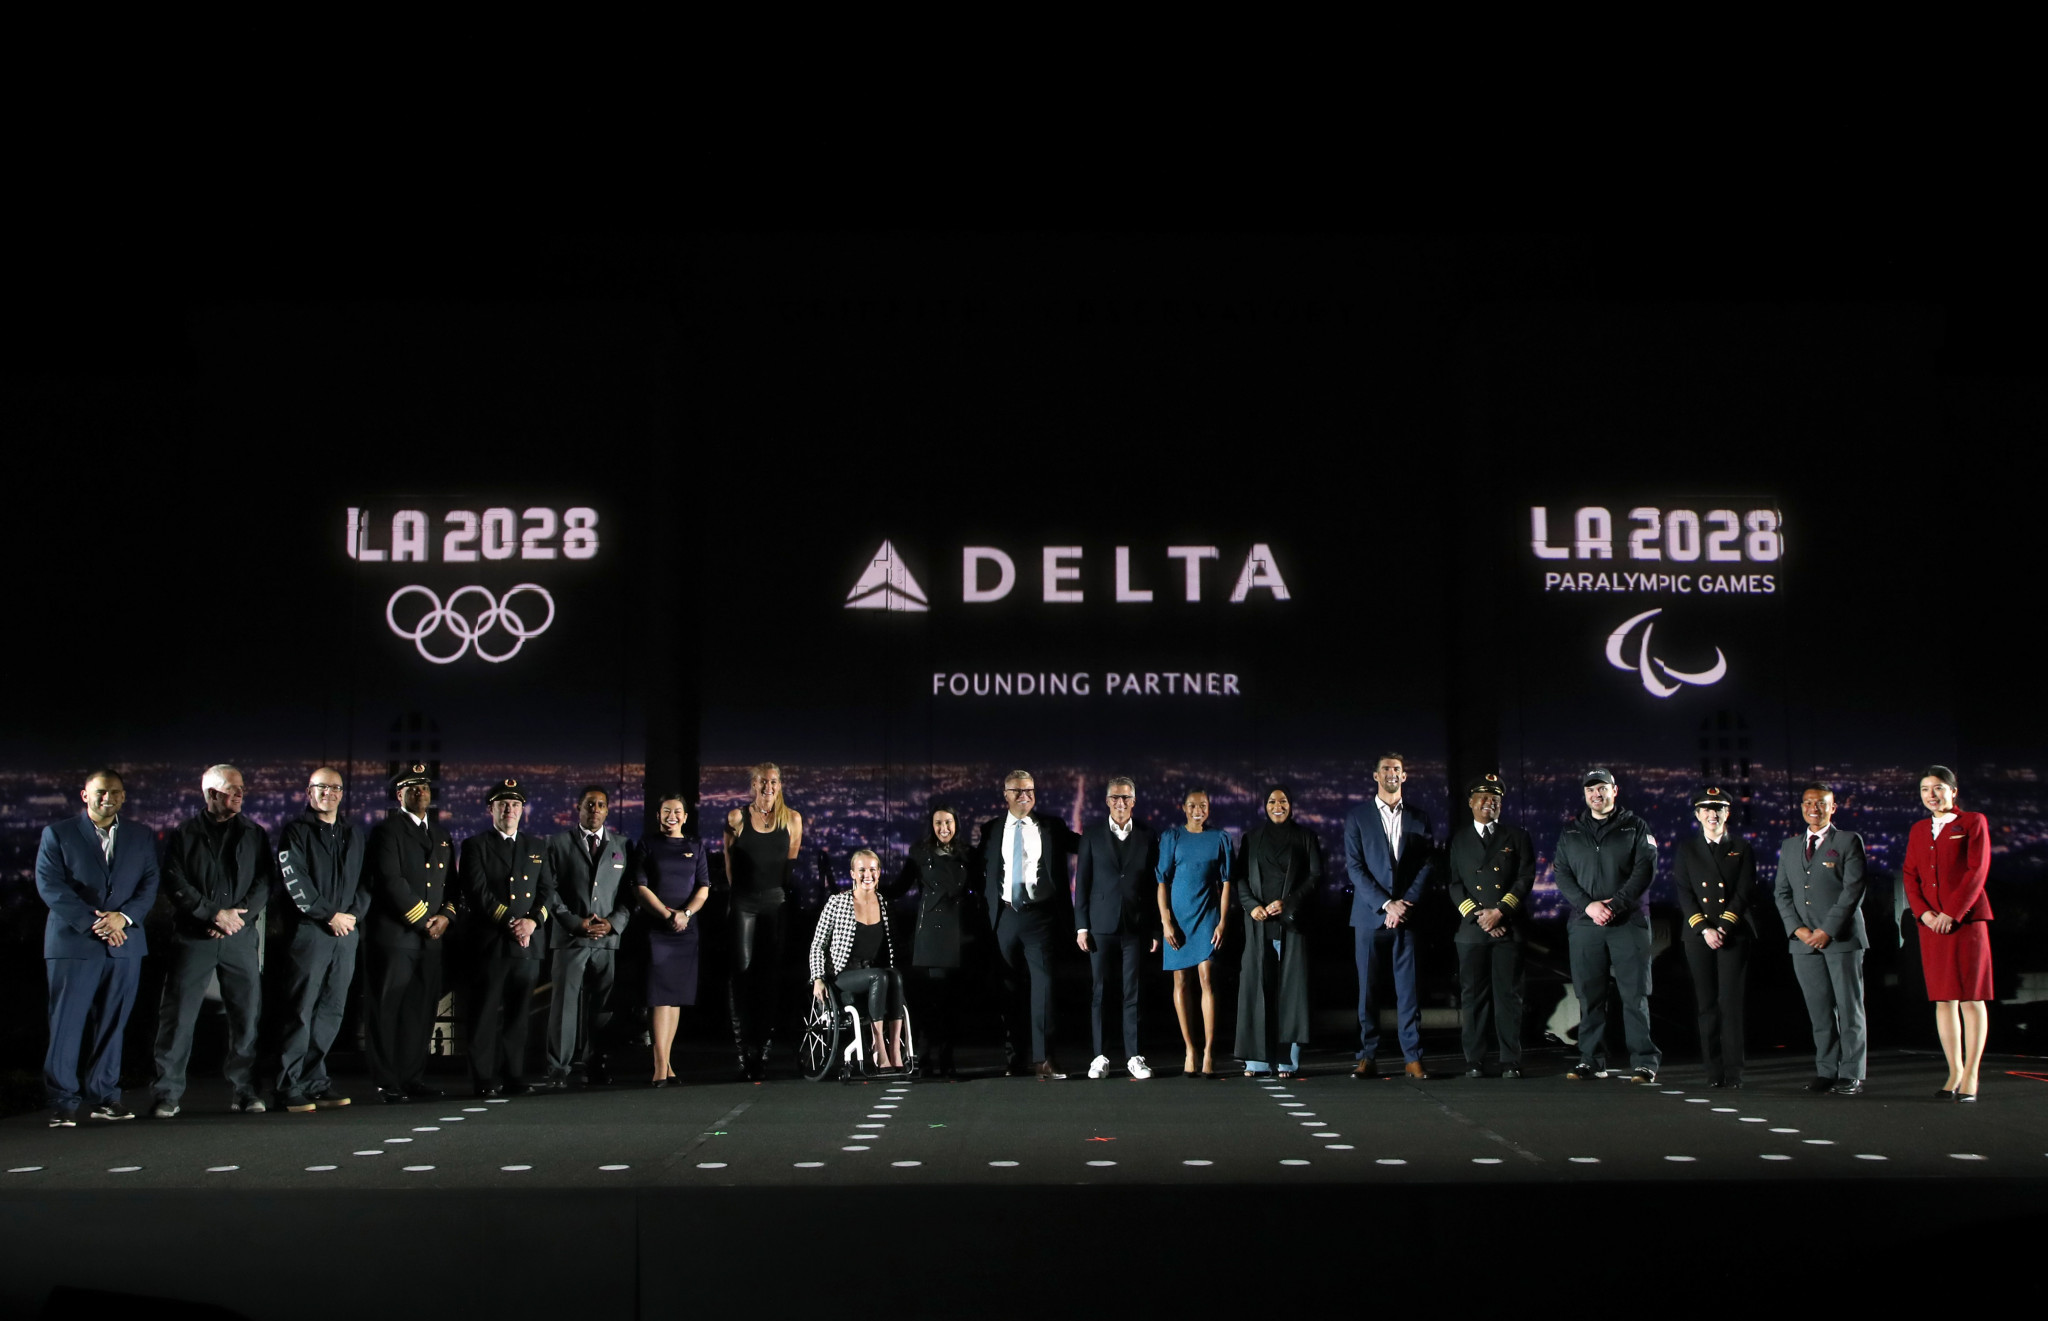 Los Angeles 2028 sign Delta Air Lines as inaugural founding partner